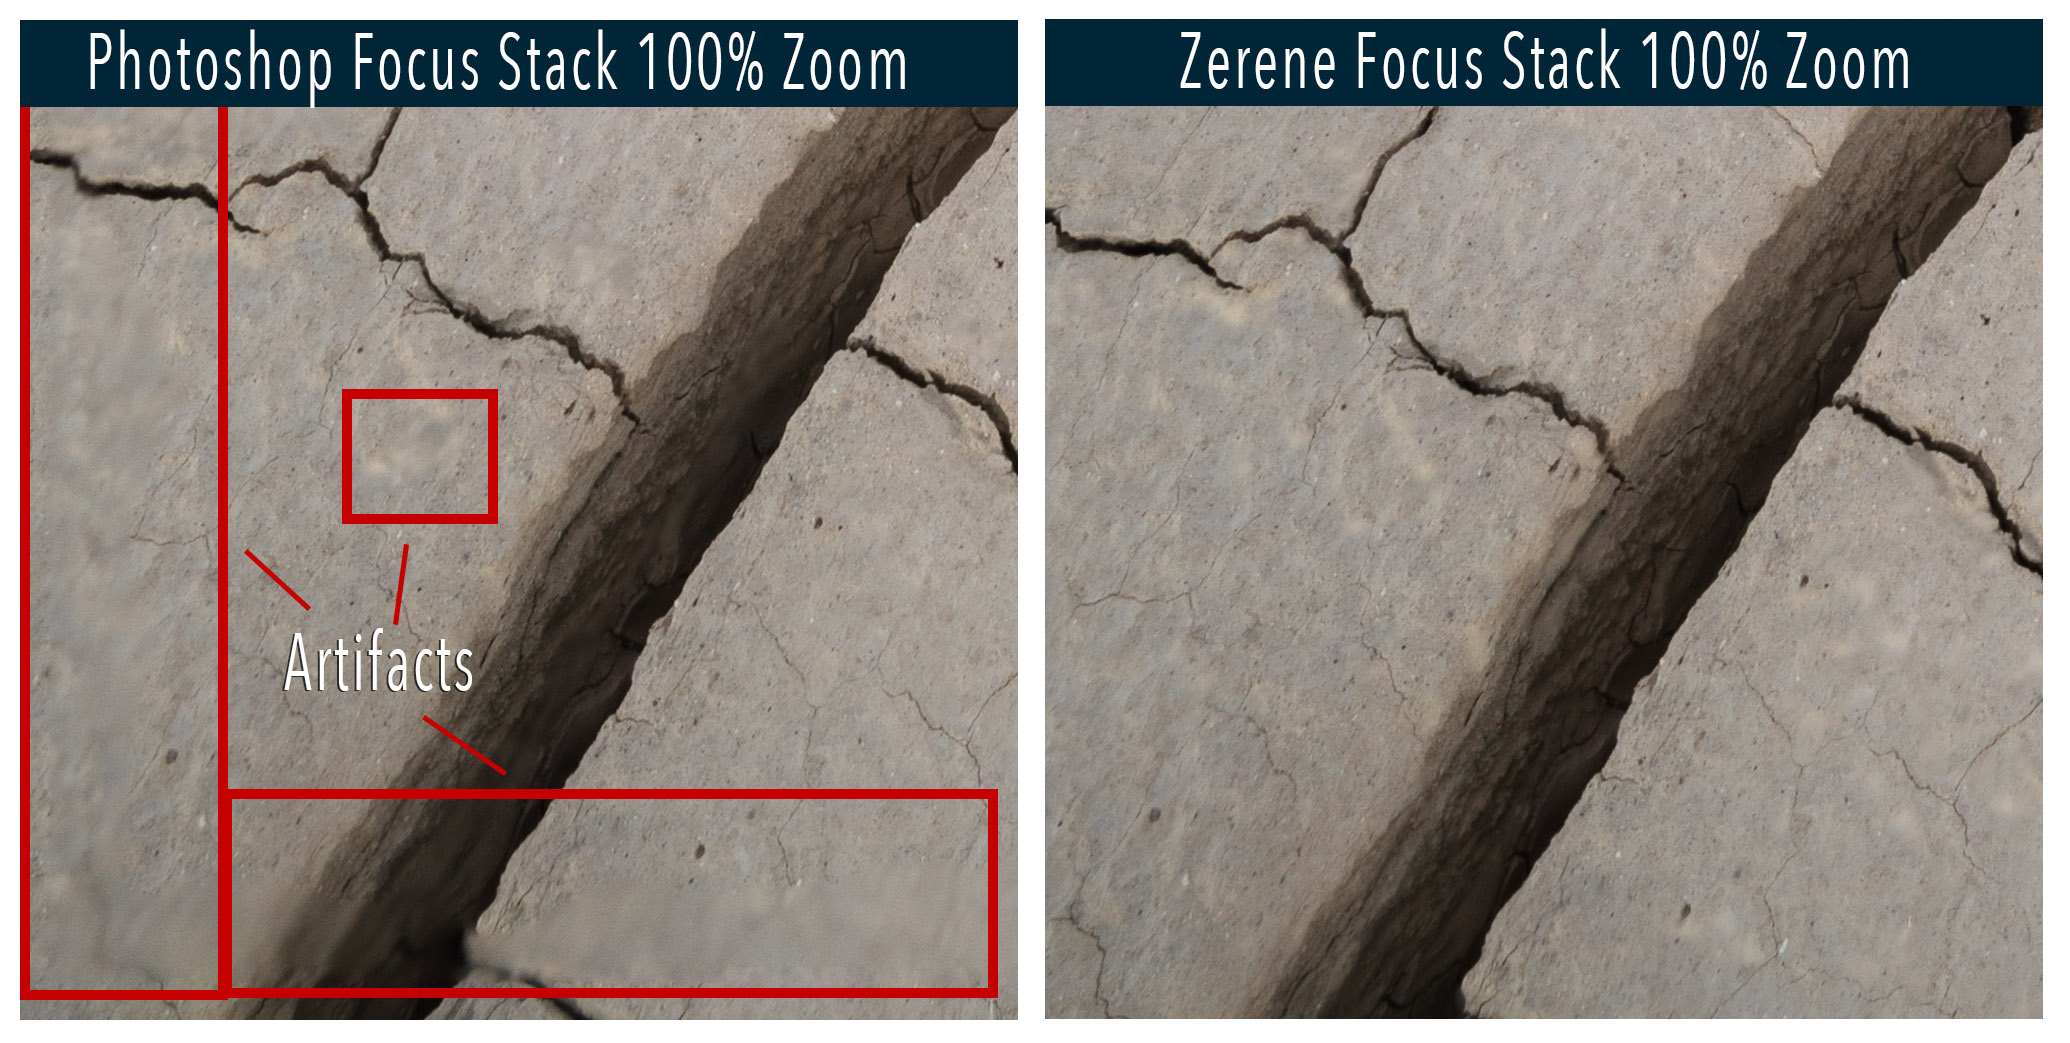 edge-artifacts during focus stack in photoshop